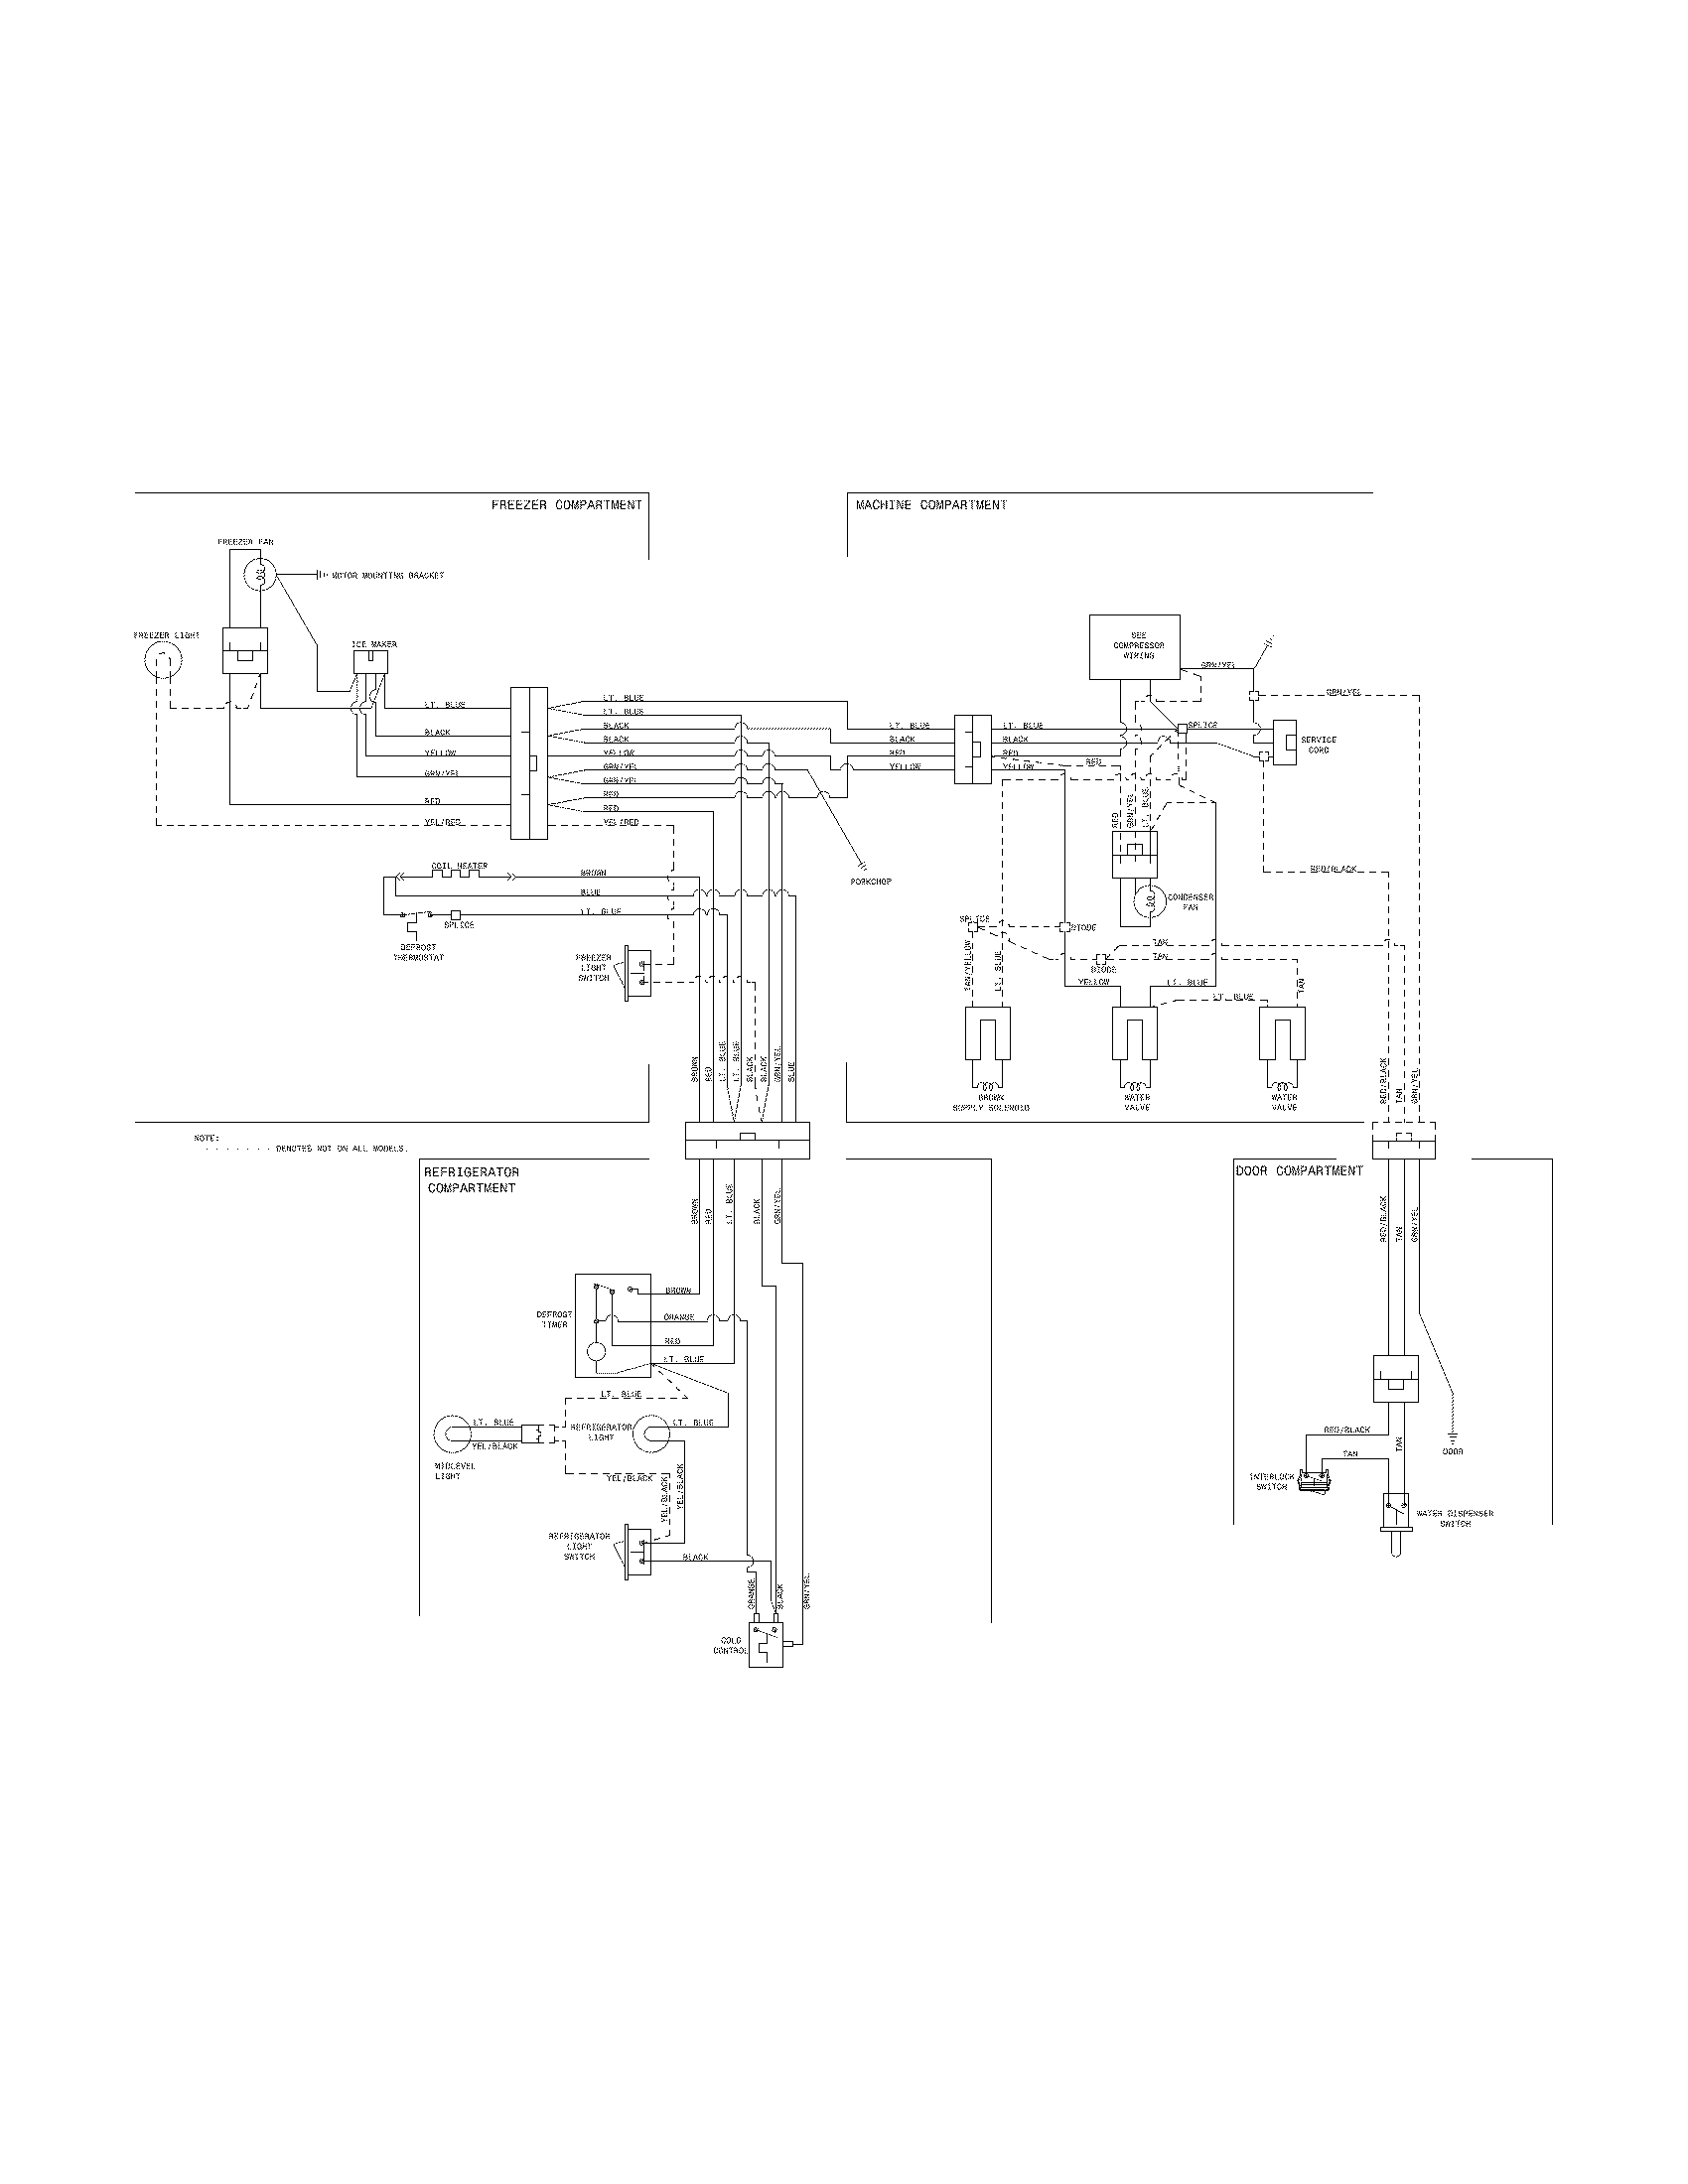 Schematic for frigidaire refrigerator water lines wiring diagram